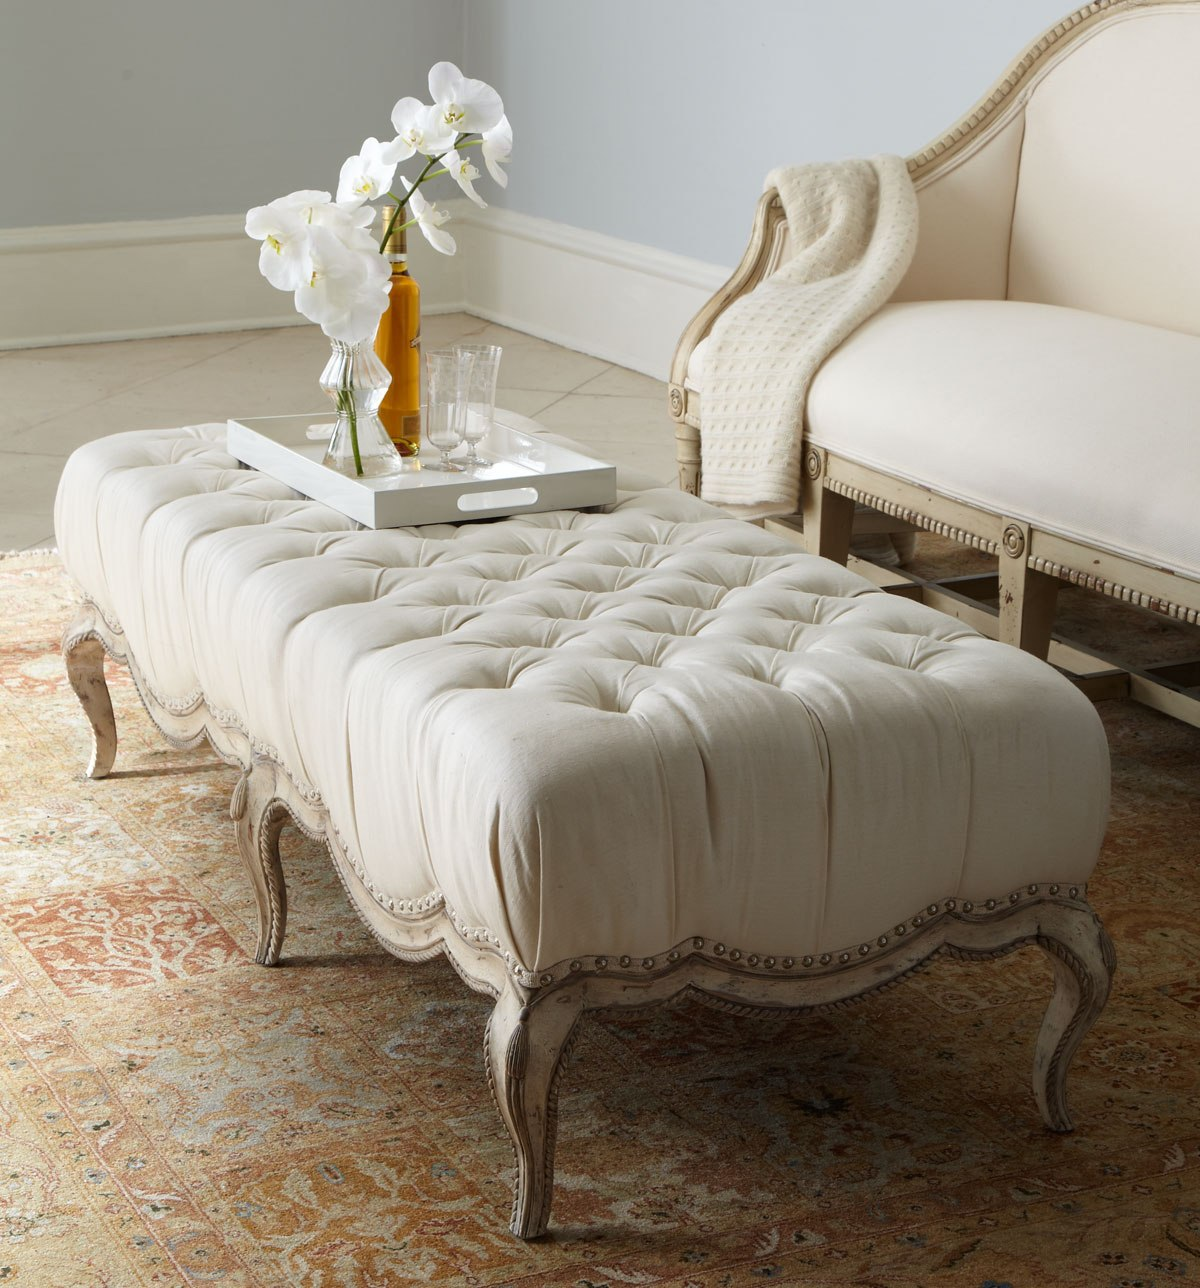 8 plush tufted ottomans to add comfort